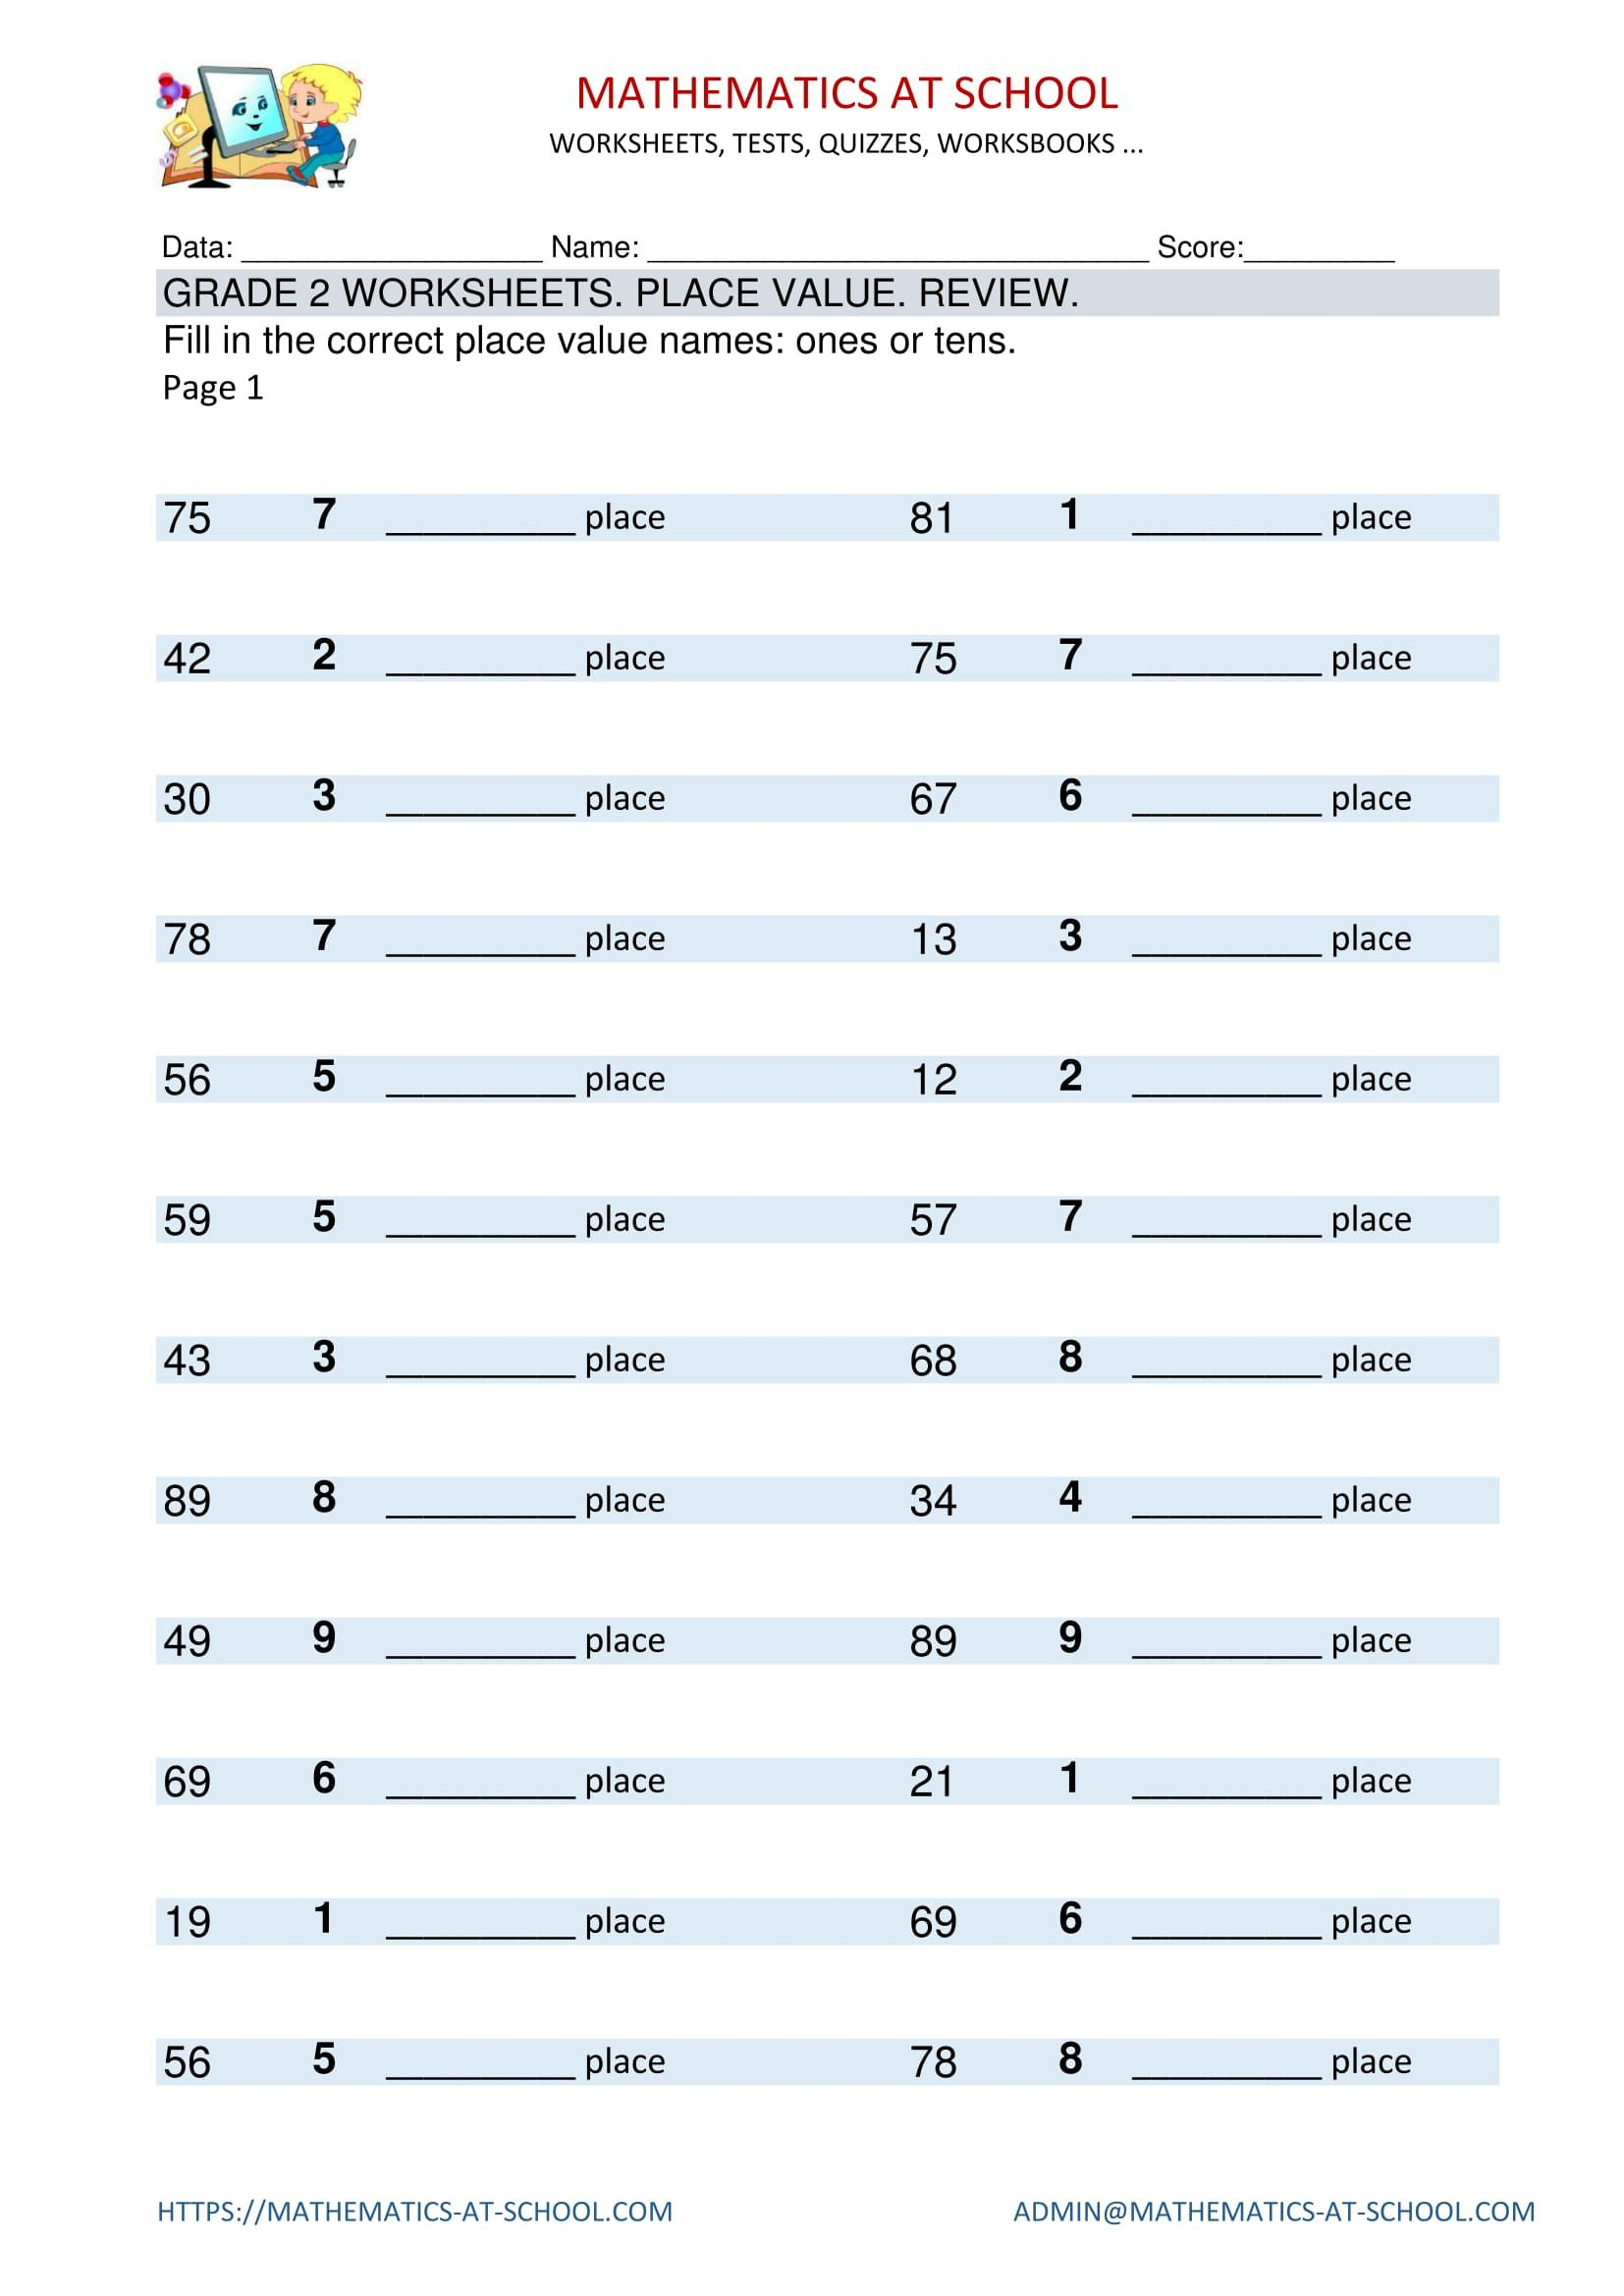 Grade 2 Worksheets Place Value Names Review Place Value Of Digits Ones And Tens Worksheets With 2nd Grade Math Worksheets Math Worksheets School Worksheets [ 2339 x 1654 Pixel ]